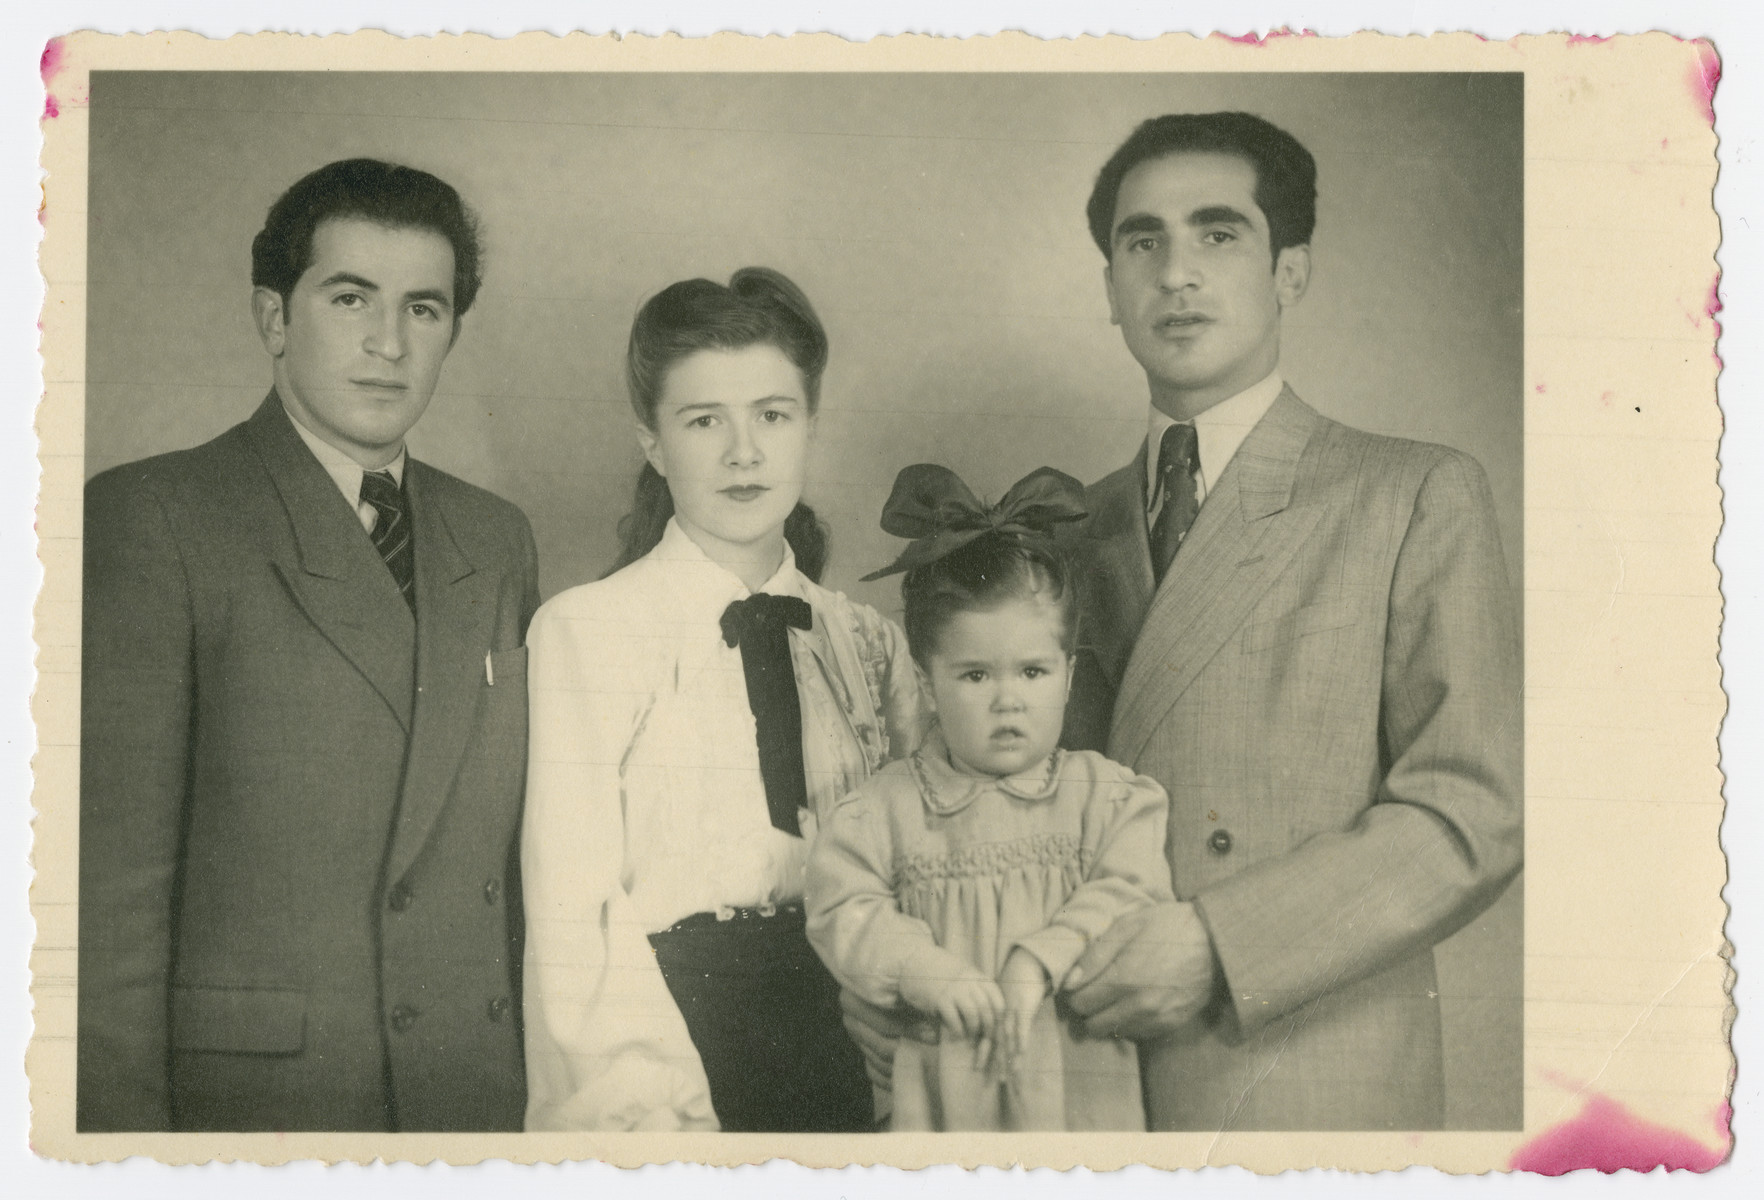 Studio portrait of the Wilonsky family taken to send to their relatives in the United States who were sponsoring their immigration so they would recognize them.  From left to right are Sam Moseson (brother-in-law of the donor), Dorothy Wilonsky, Mona Wilonsky and Robert Wilonsky.